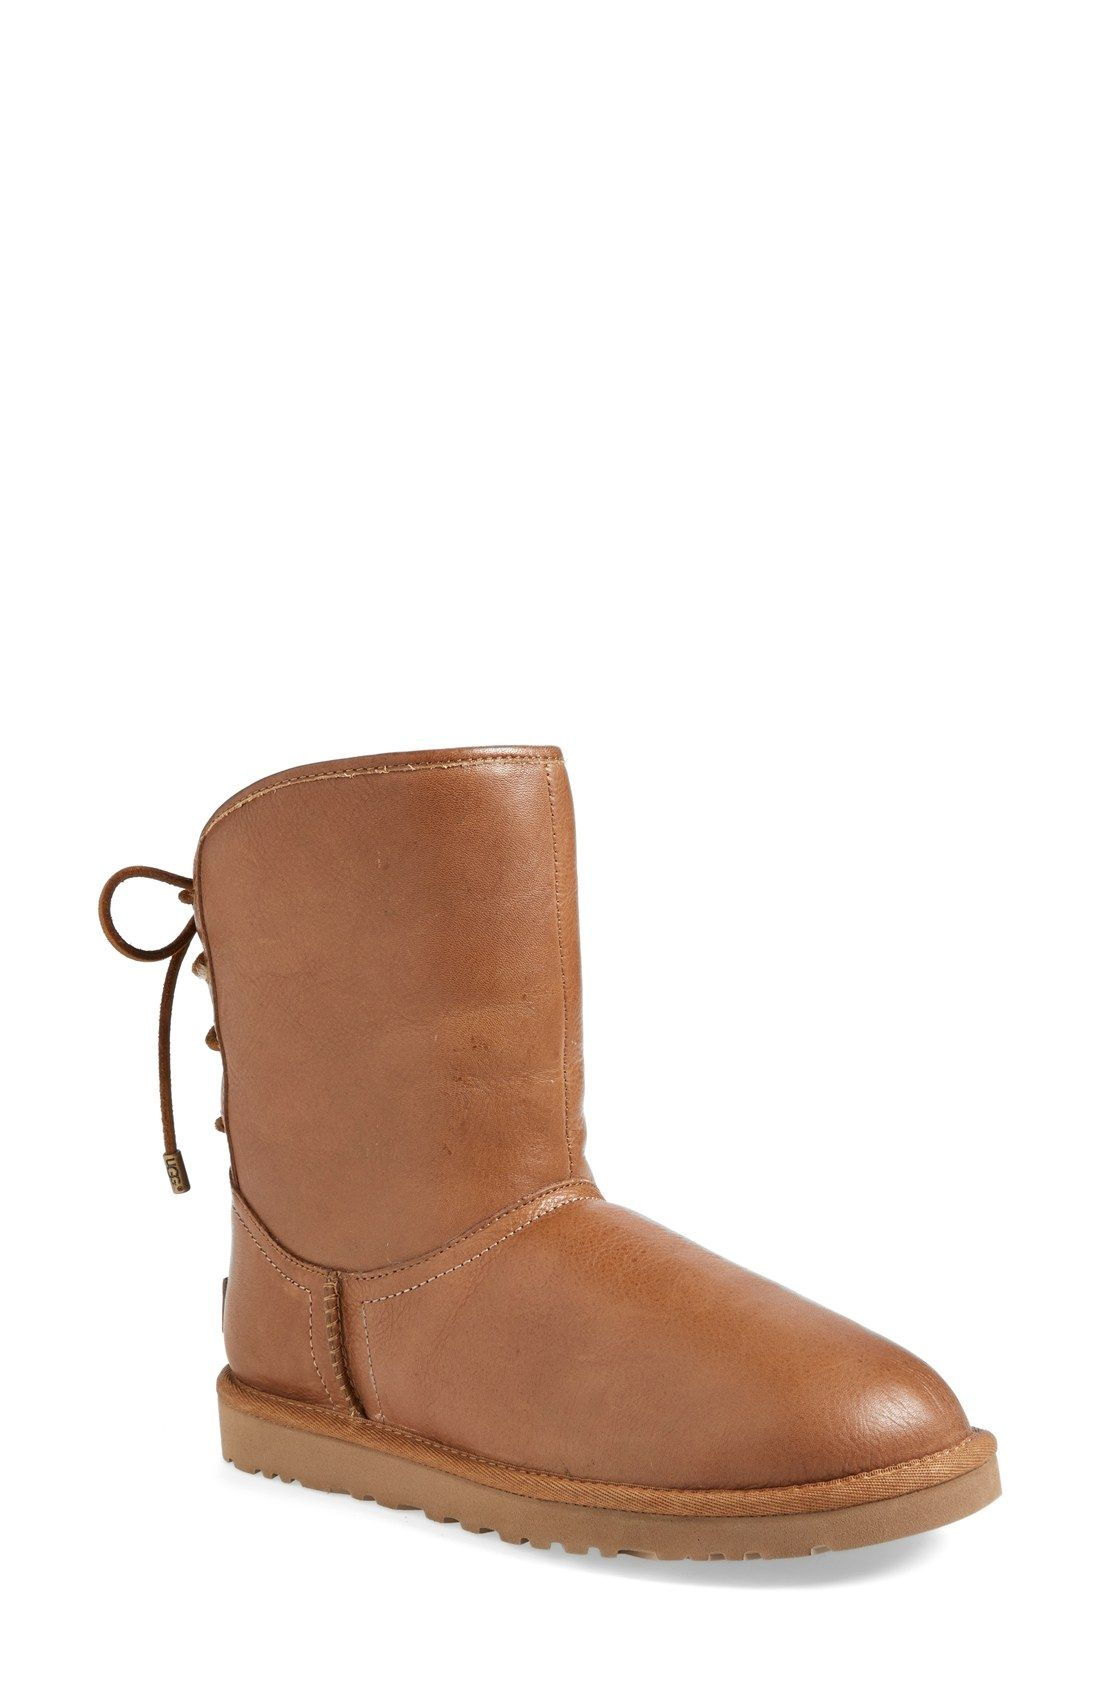 8c32ce53364 Water resistant UGG boots. | Winter Fashion | Fashion, Uggs, Boots